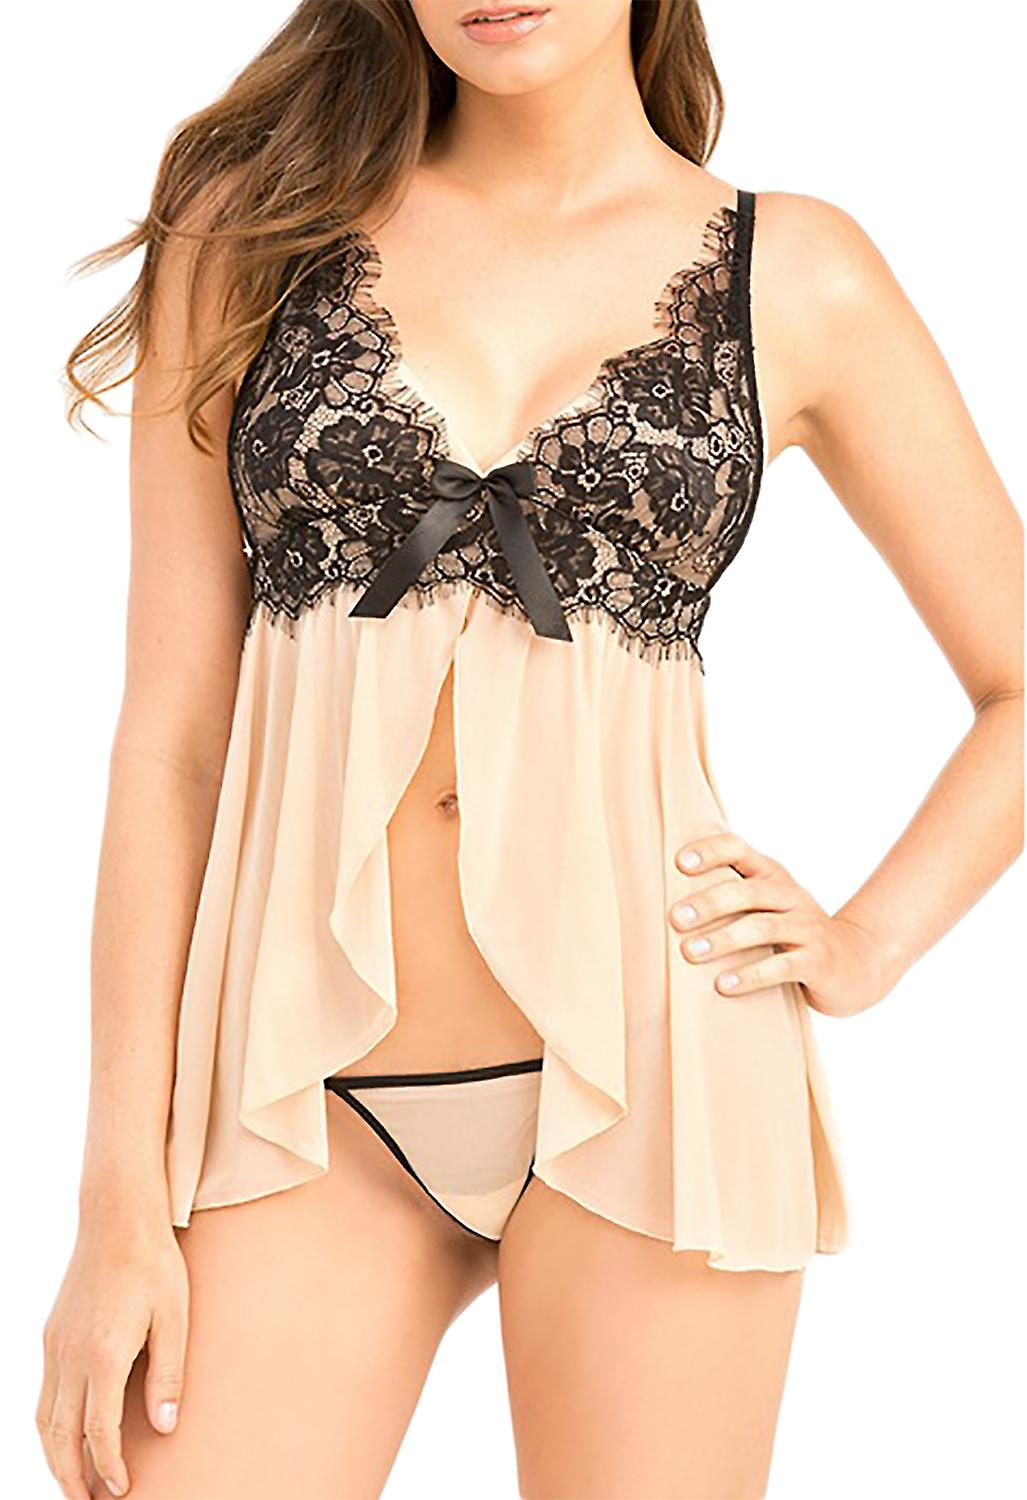 Waooh - Transparent Babydoll with lace neckline Buch